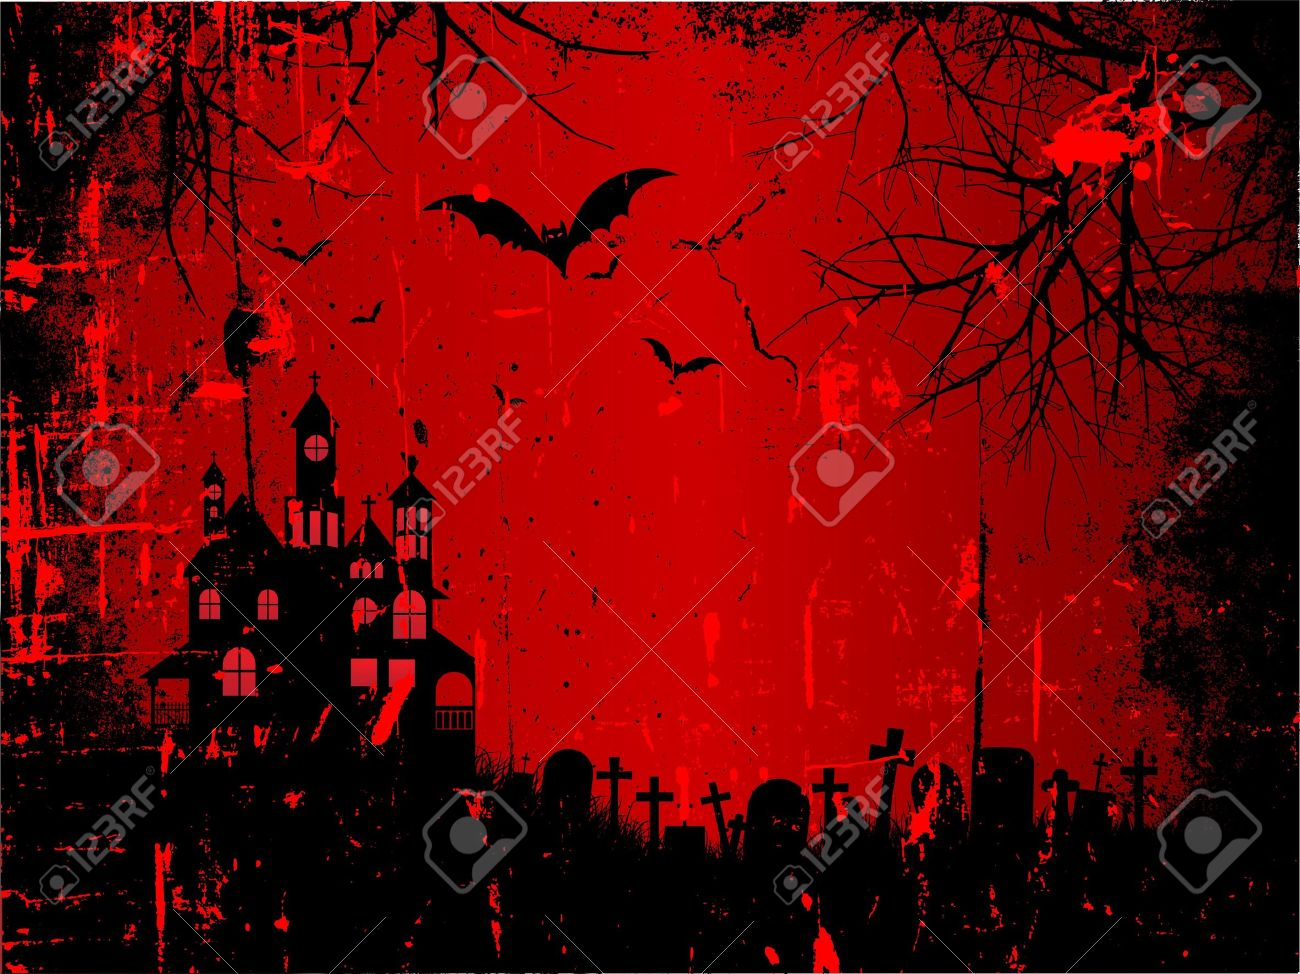 spooky halloween background with a grunge style effect stock vector